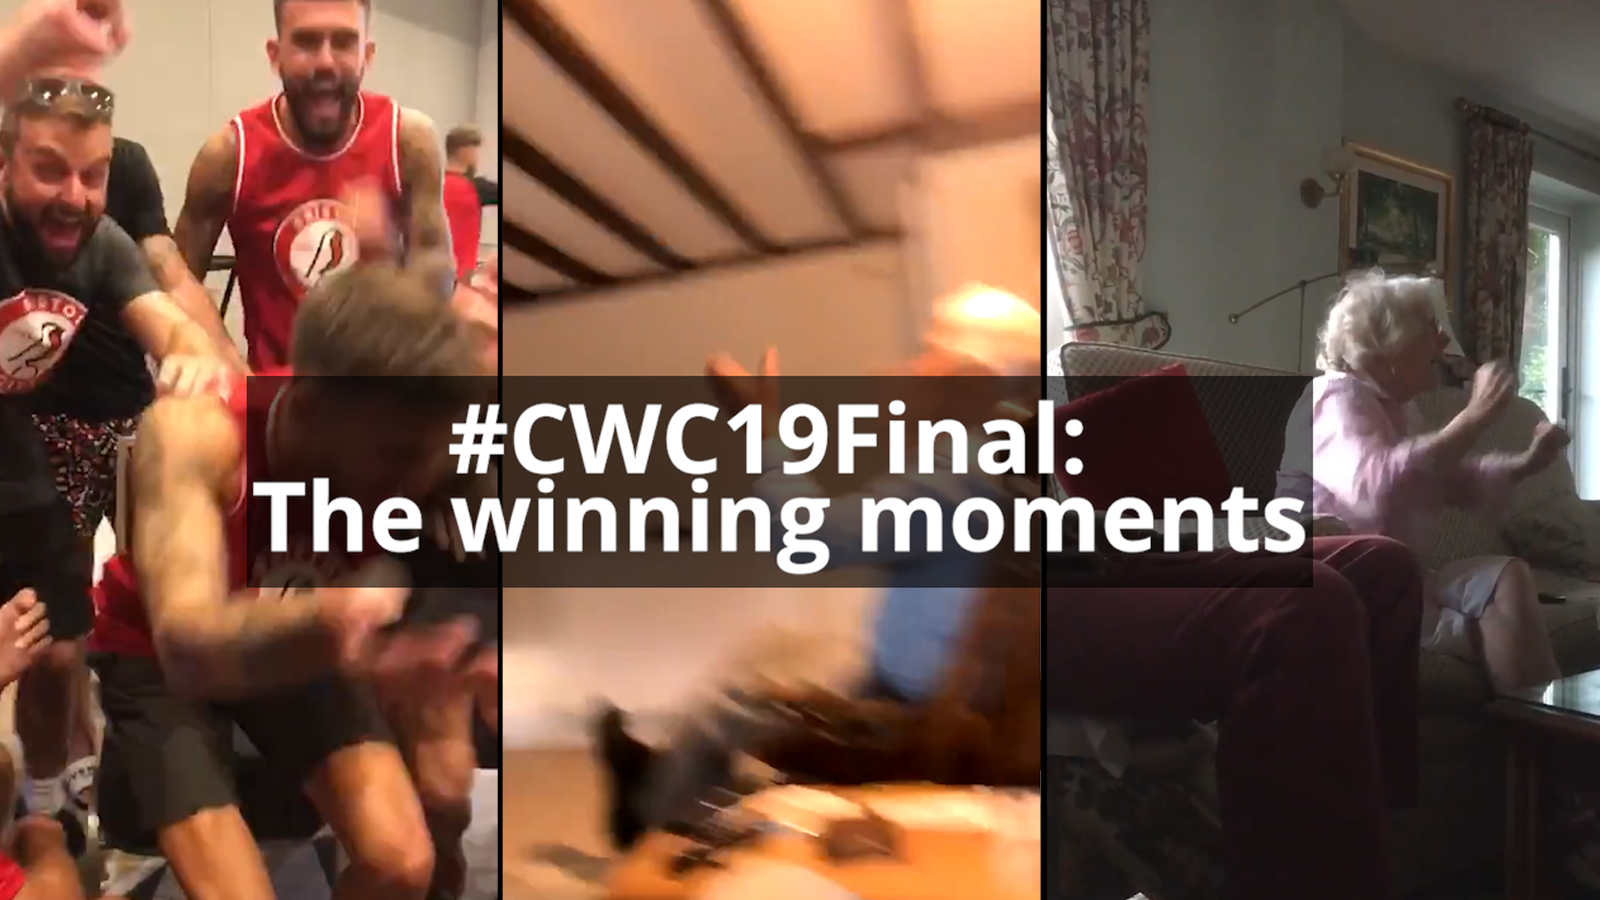 cwc19final-the-winning-moments